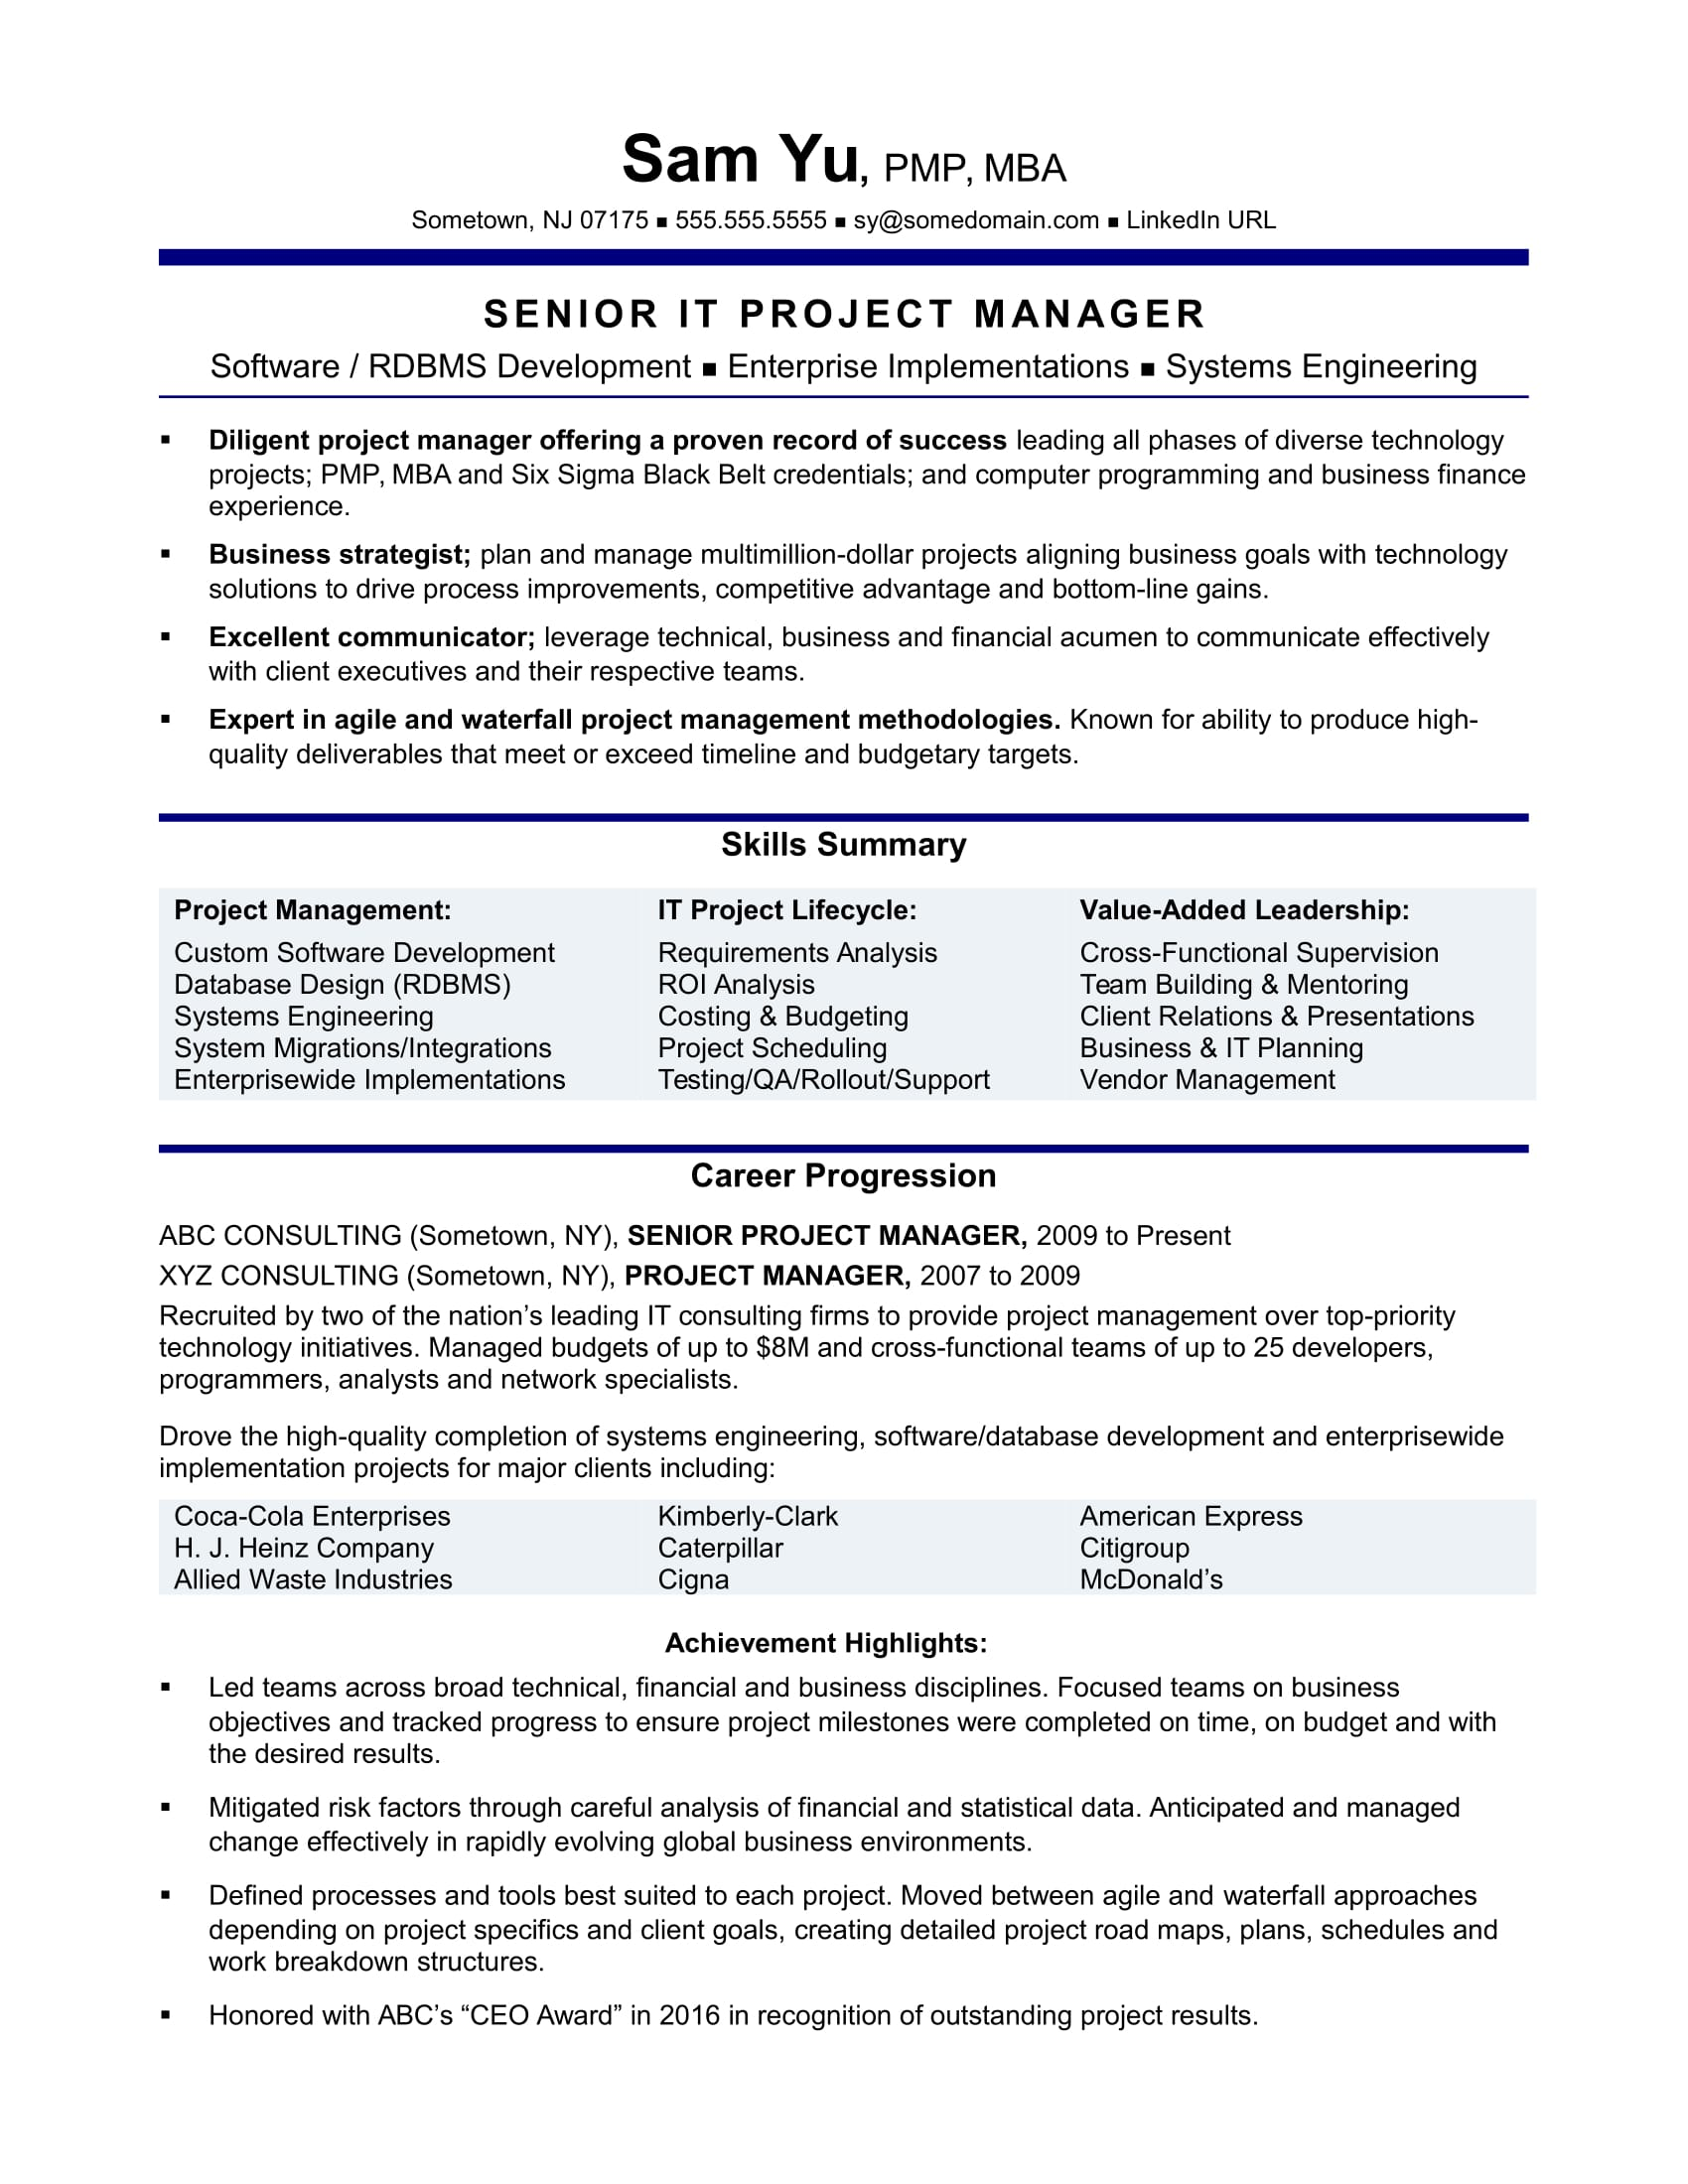 Management Skills Resume Gorgeous Experienced IT Project Manager Resume Sample Monster